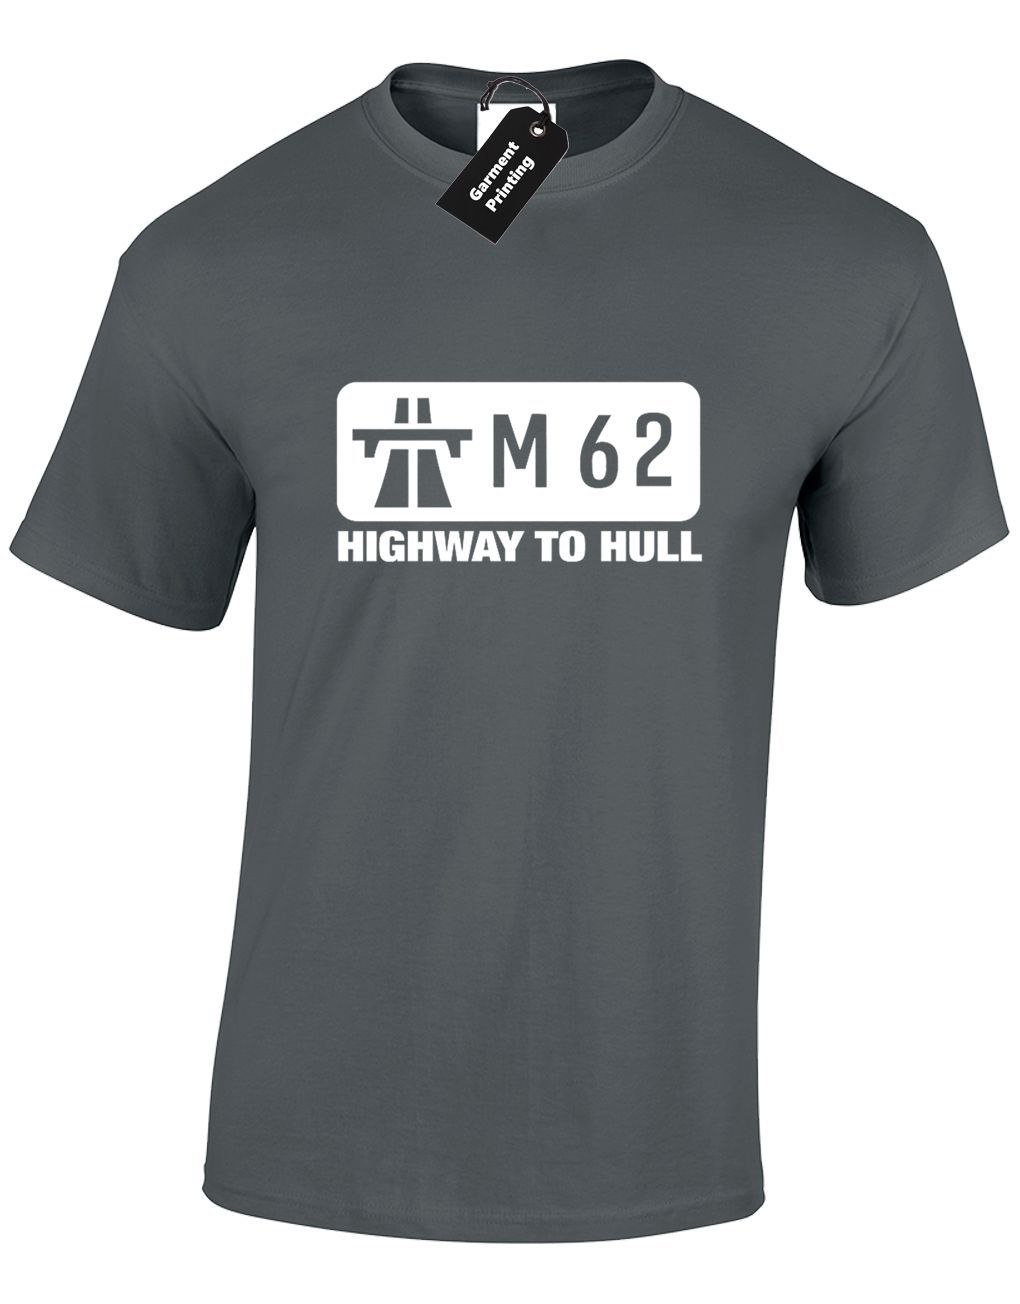 M62 Highway To Hull Funny Womens Ladies T-Shirt